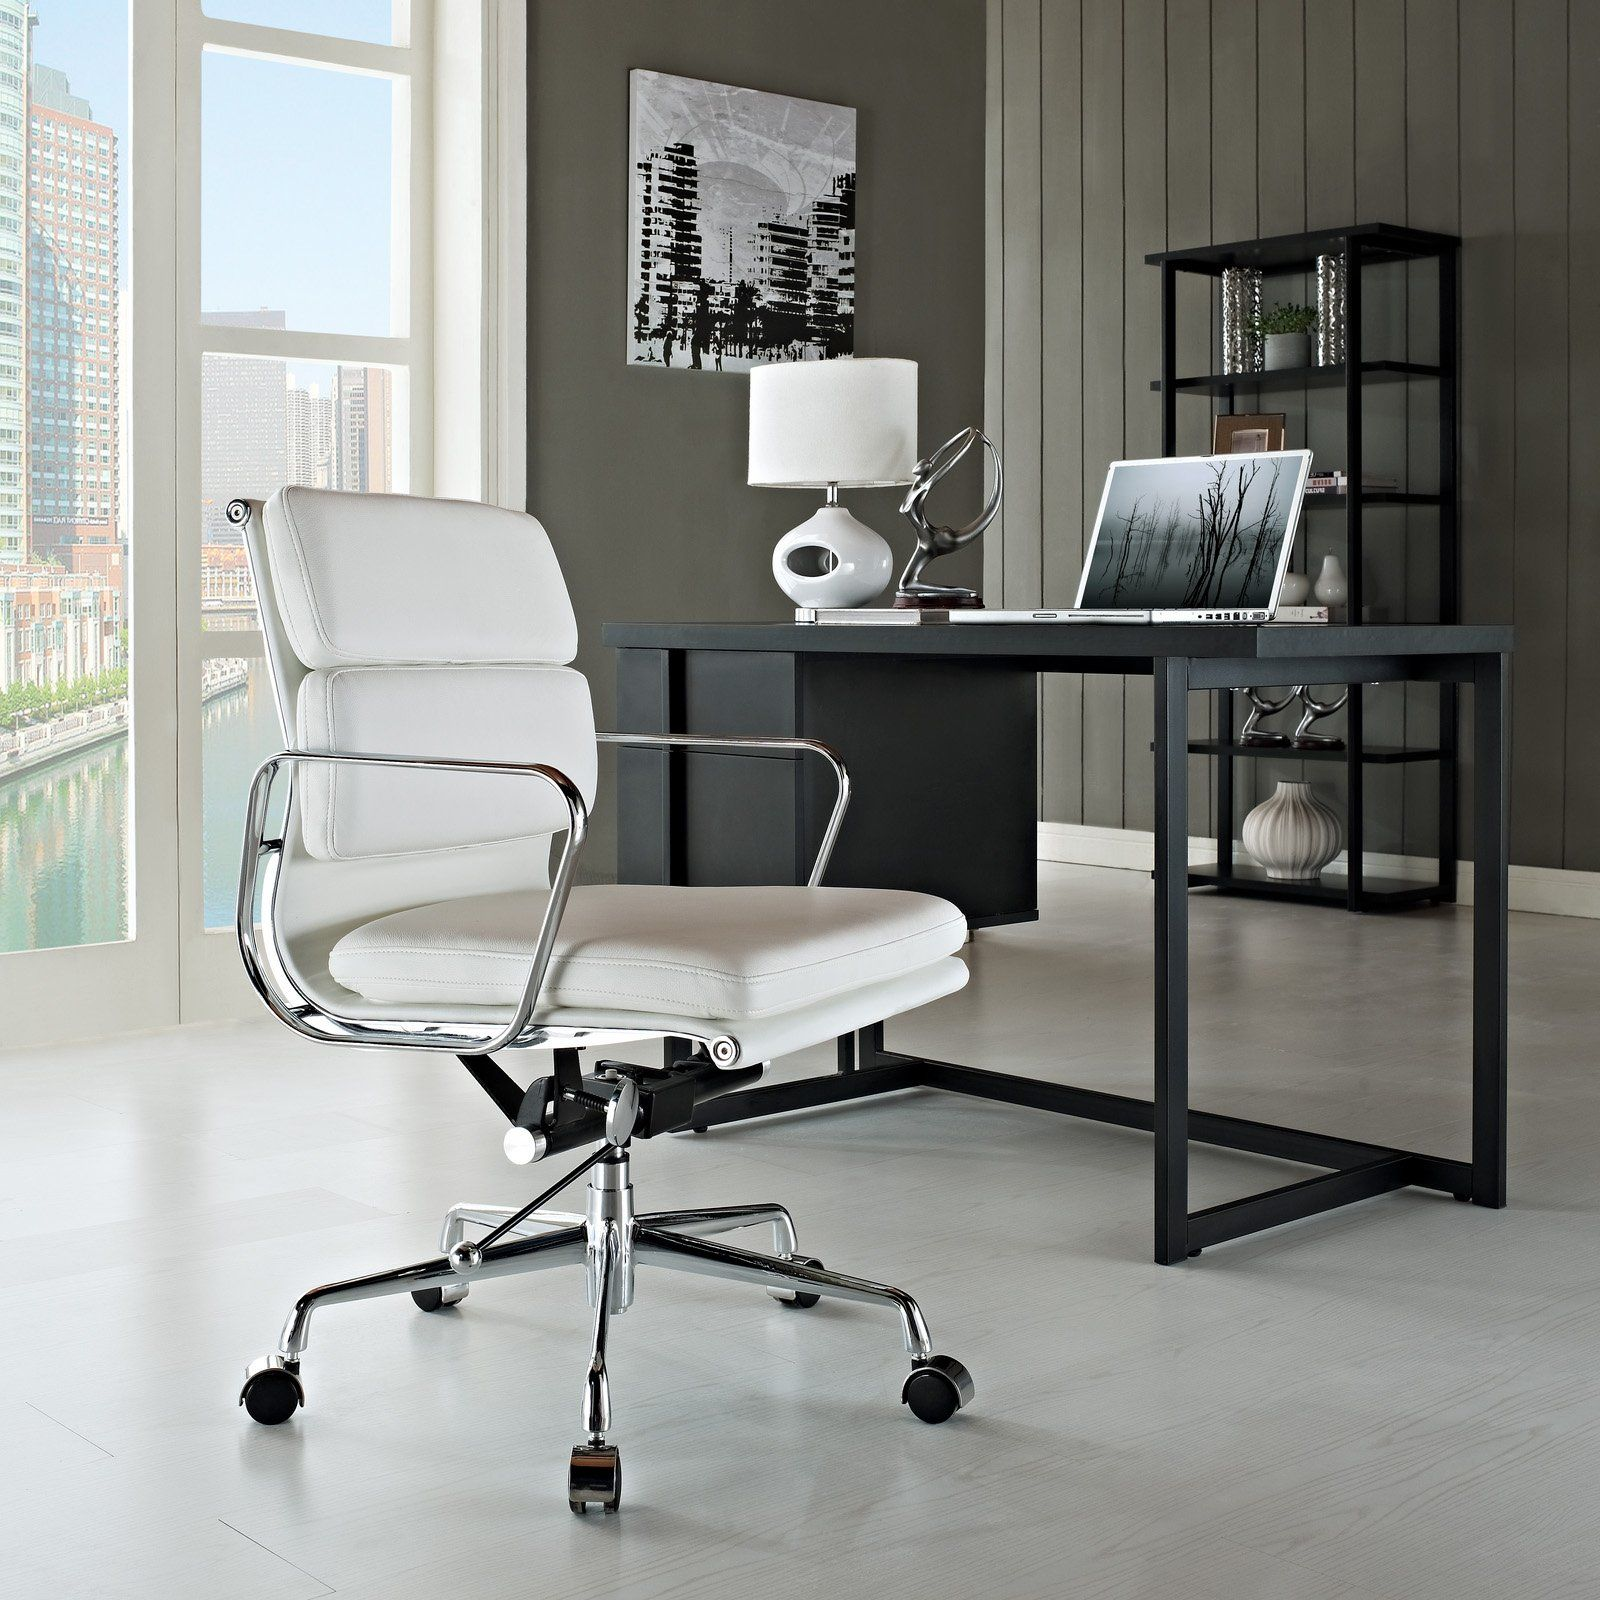 office chair genuine leather white. Amazon.com - LexMod Discovery Mid Back Leather Conference Office Chair In White Genuine